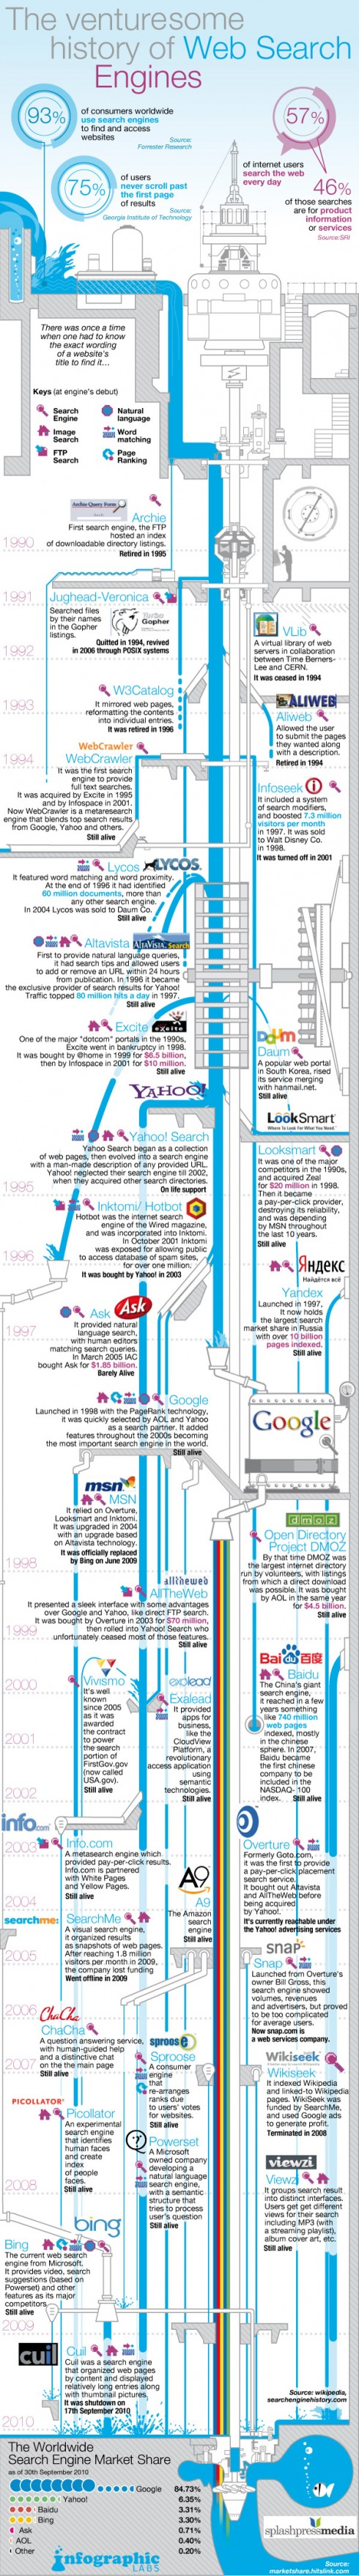 search engine history1